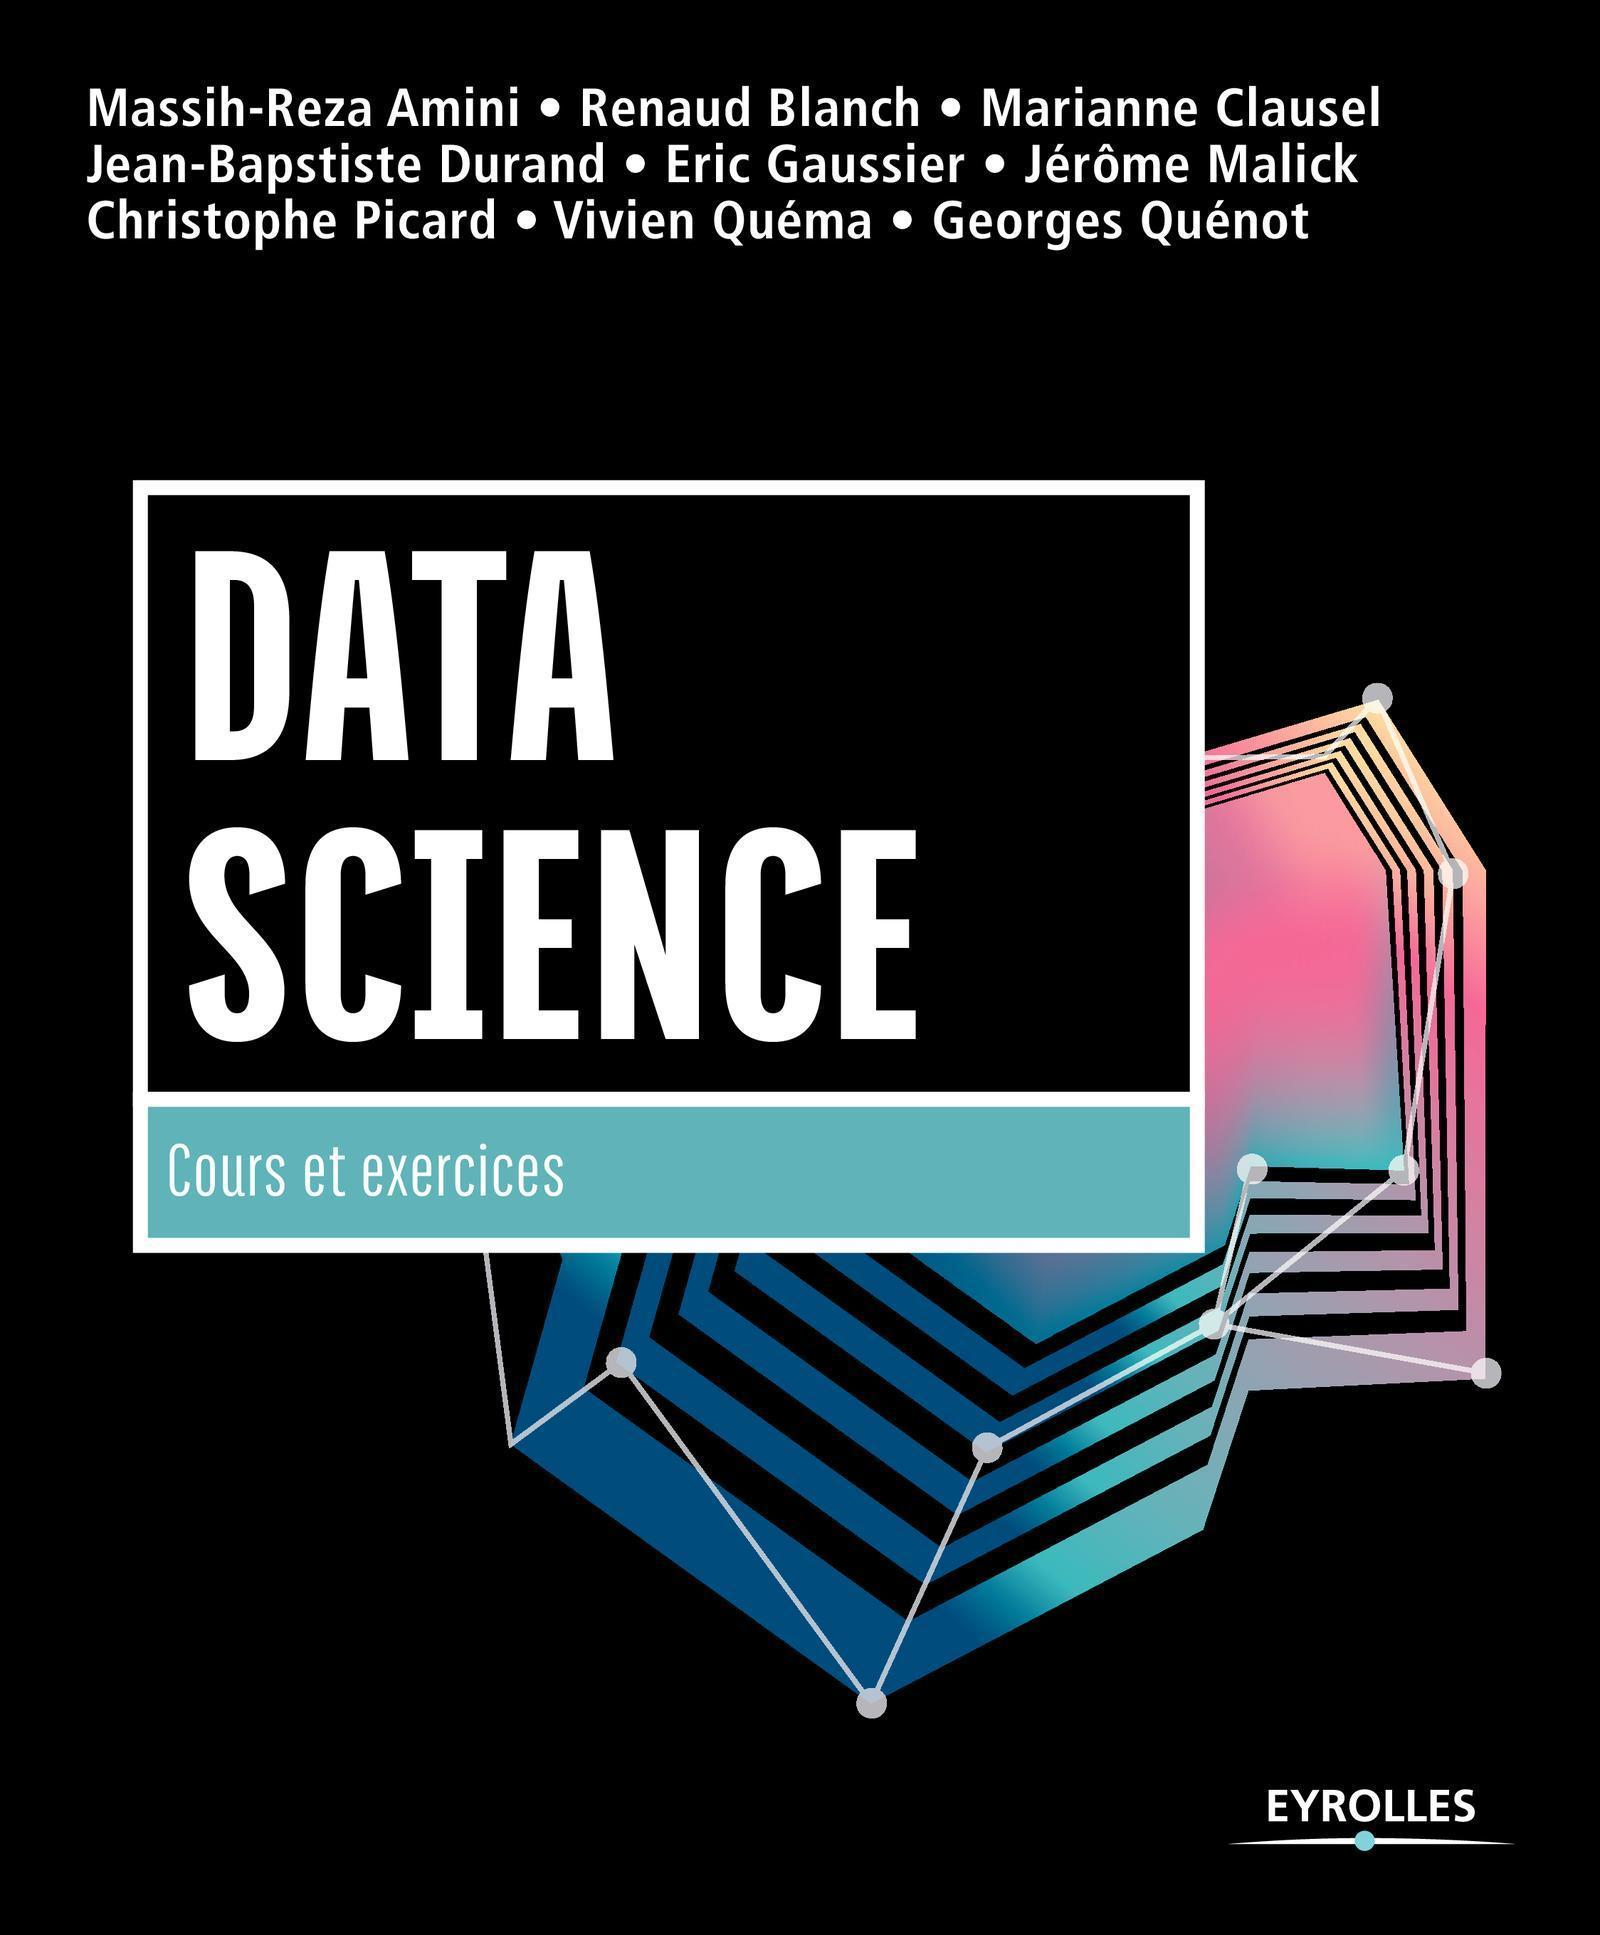 DATA SCIENCE  COURS ET EXERCICES